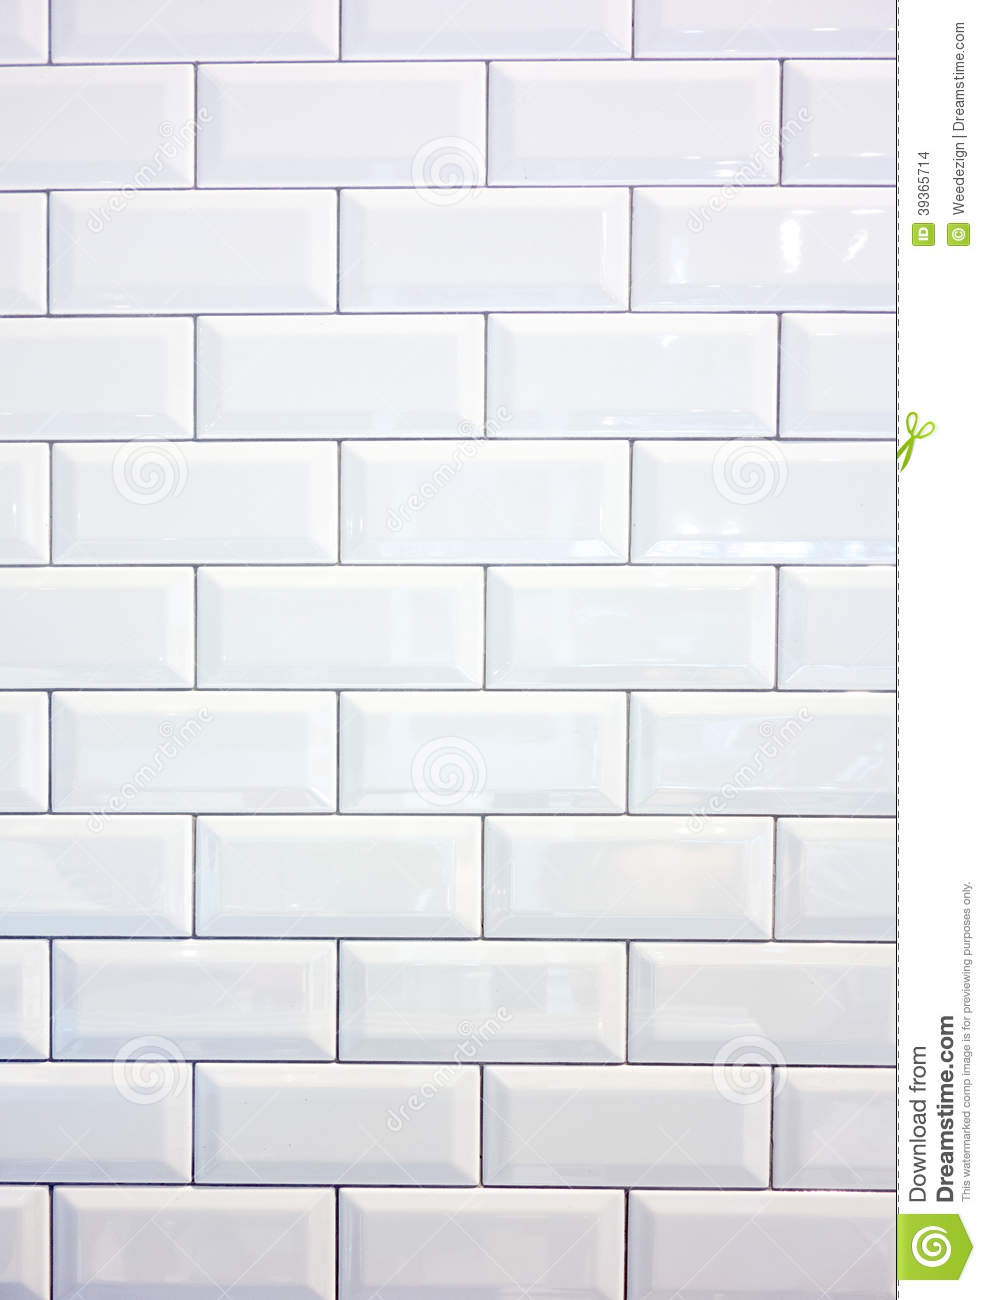 White ceramic tile wall stock photo image 39365714 for Ceramic carrelage